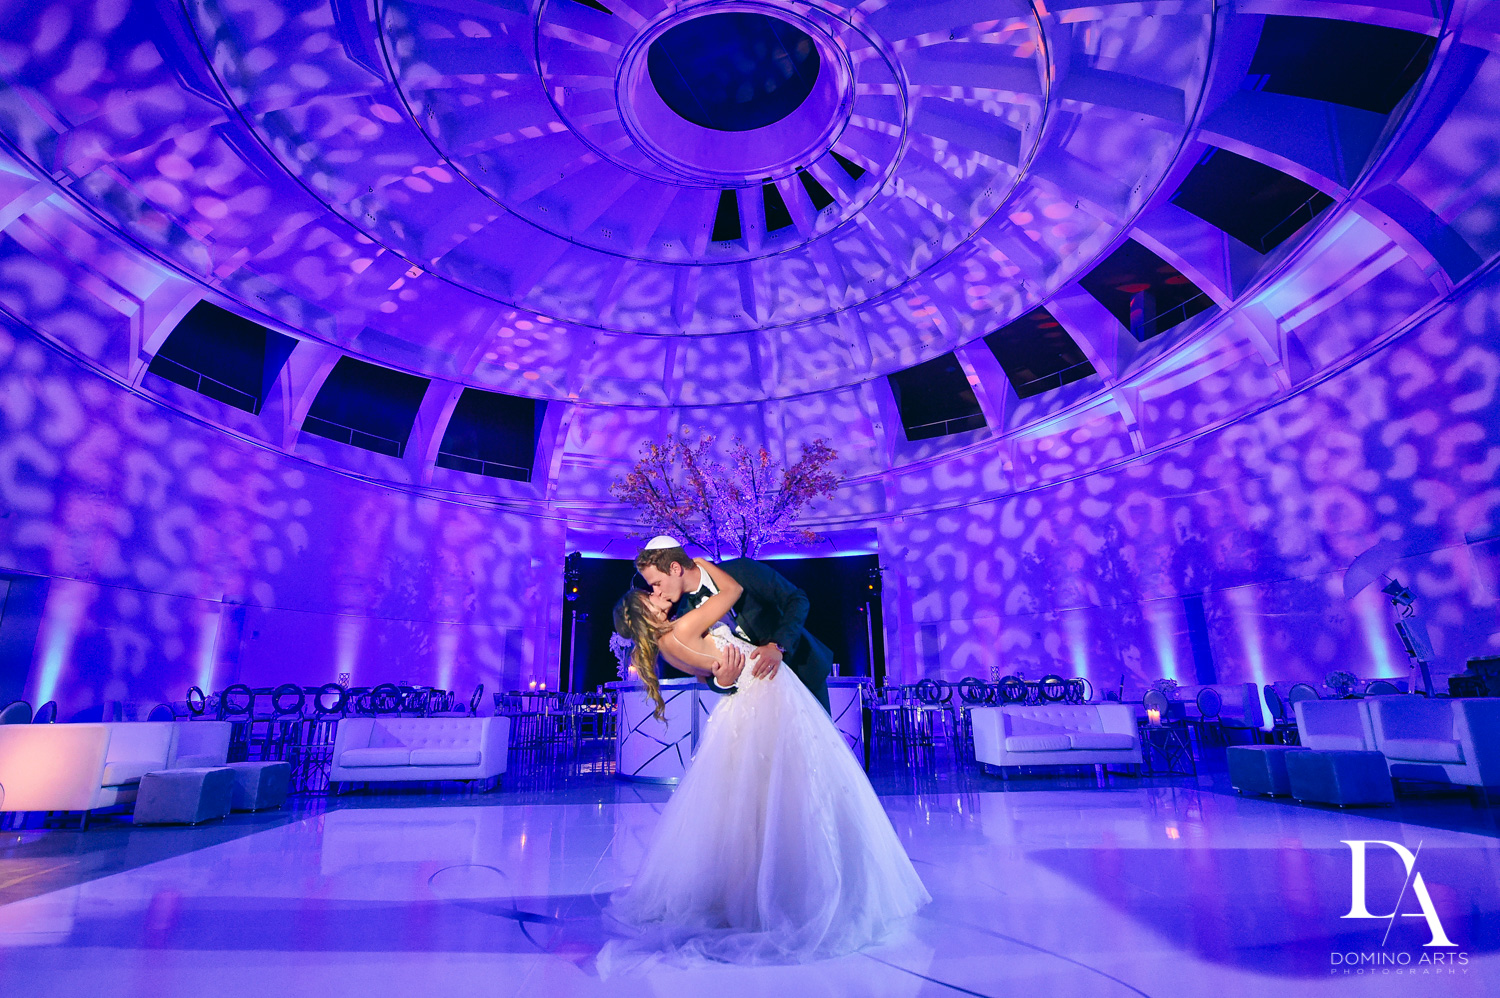 Elegant Luxury boutique wedding décor at Faena Hotel Miami Beach